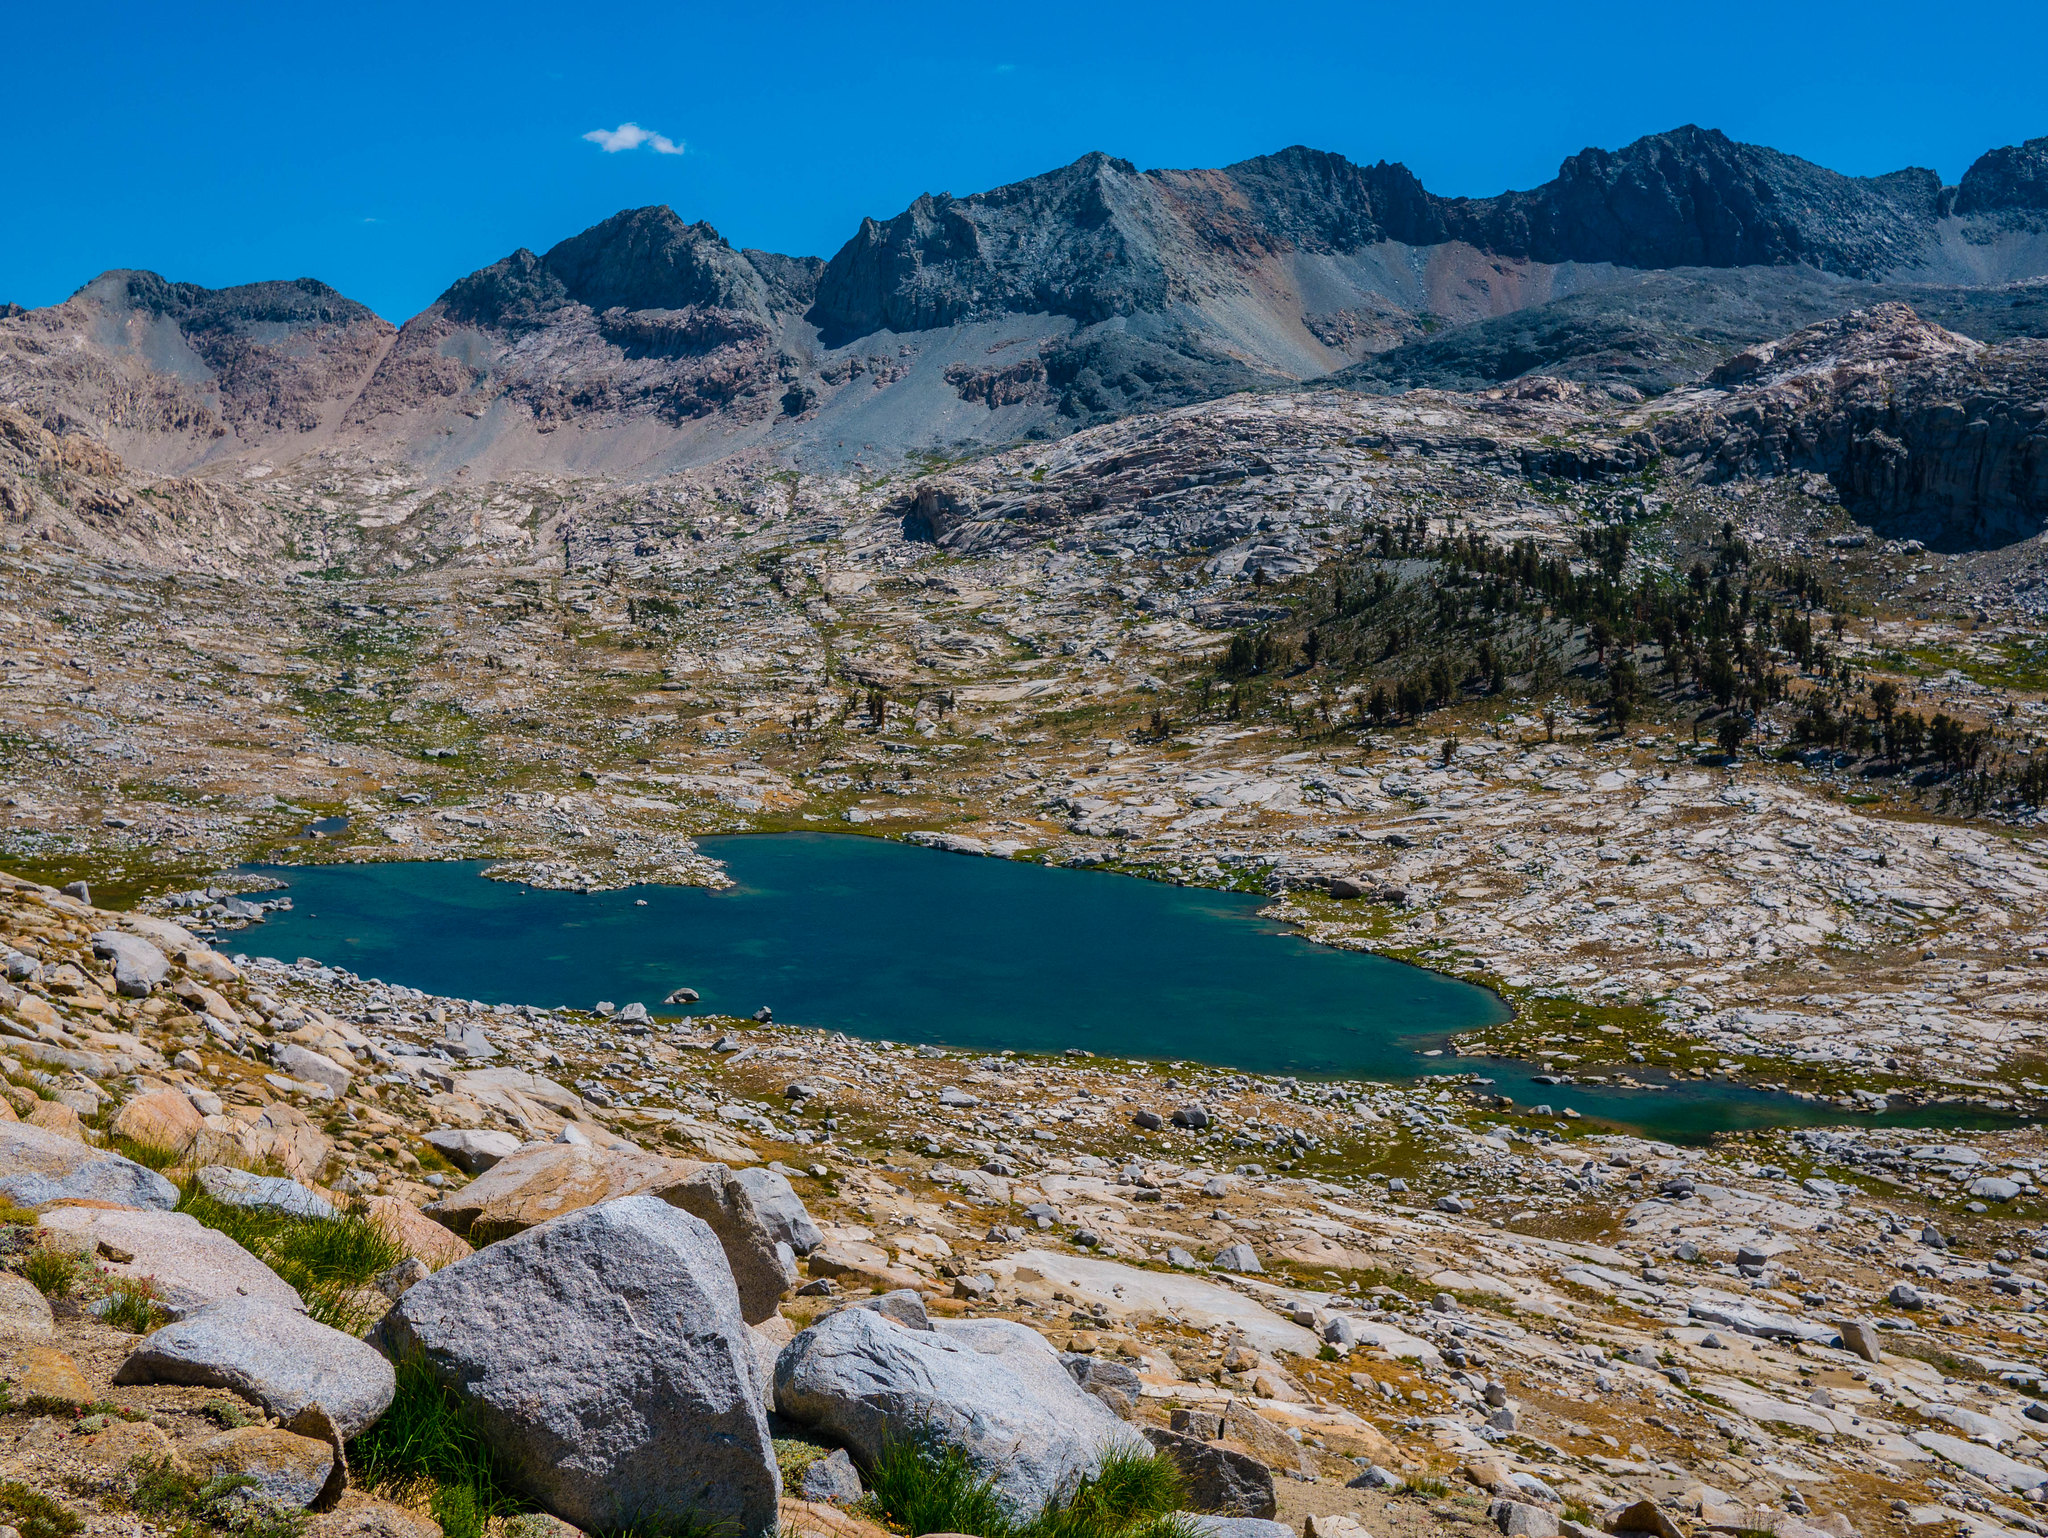 Lowest of the lakes in the 9 Lakes Basin, as seen from the Kaweah Gap